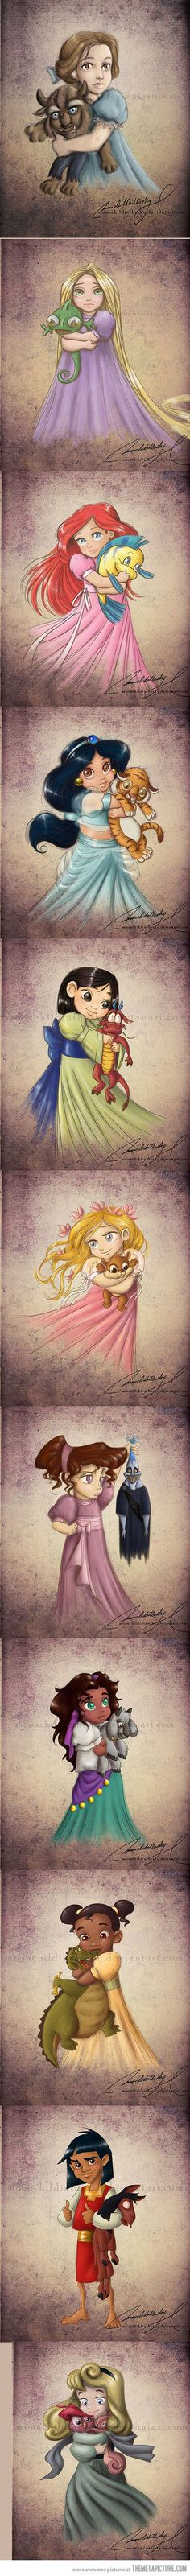 funny Disney Princesses drawing pets on imgfave